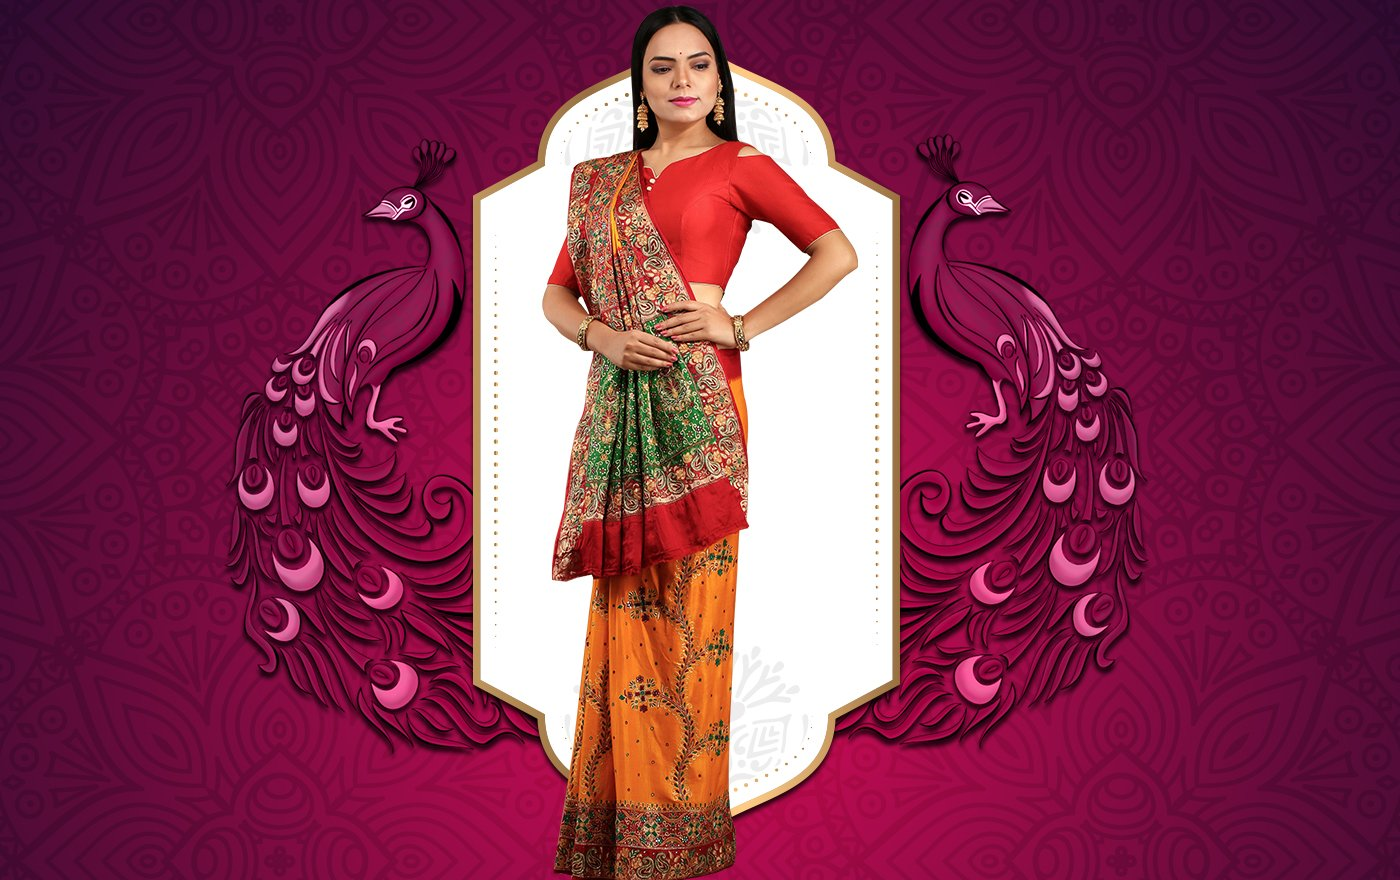 Gharchola Sarees- The Homecoming Bridal Attire